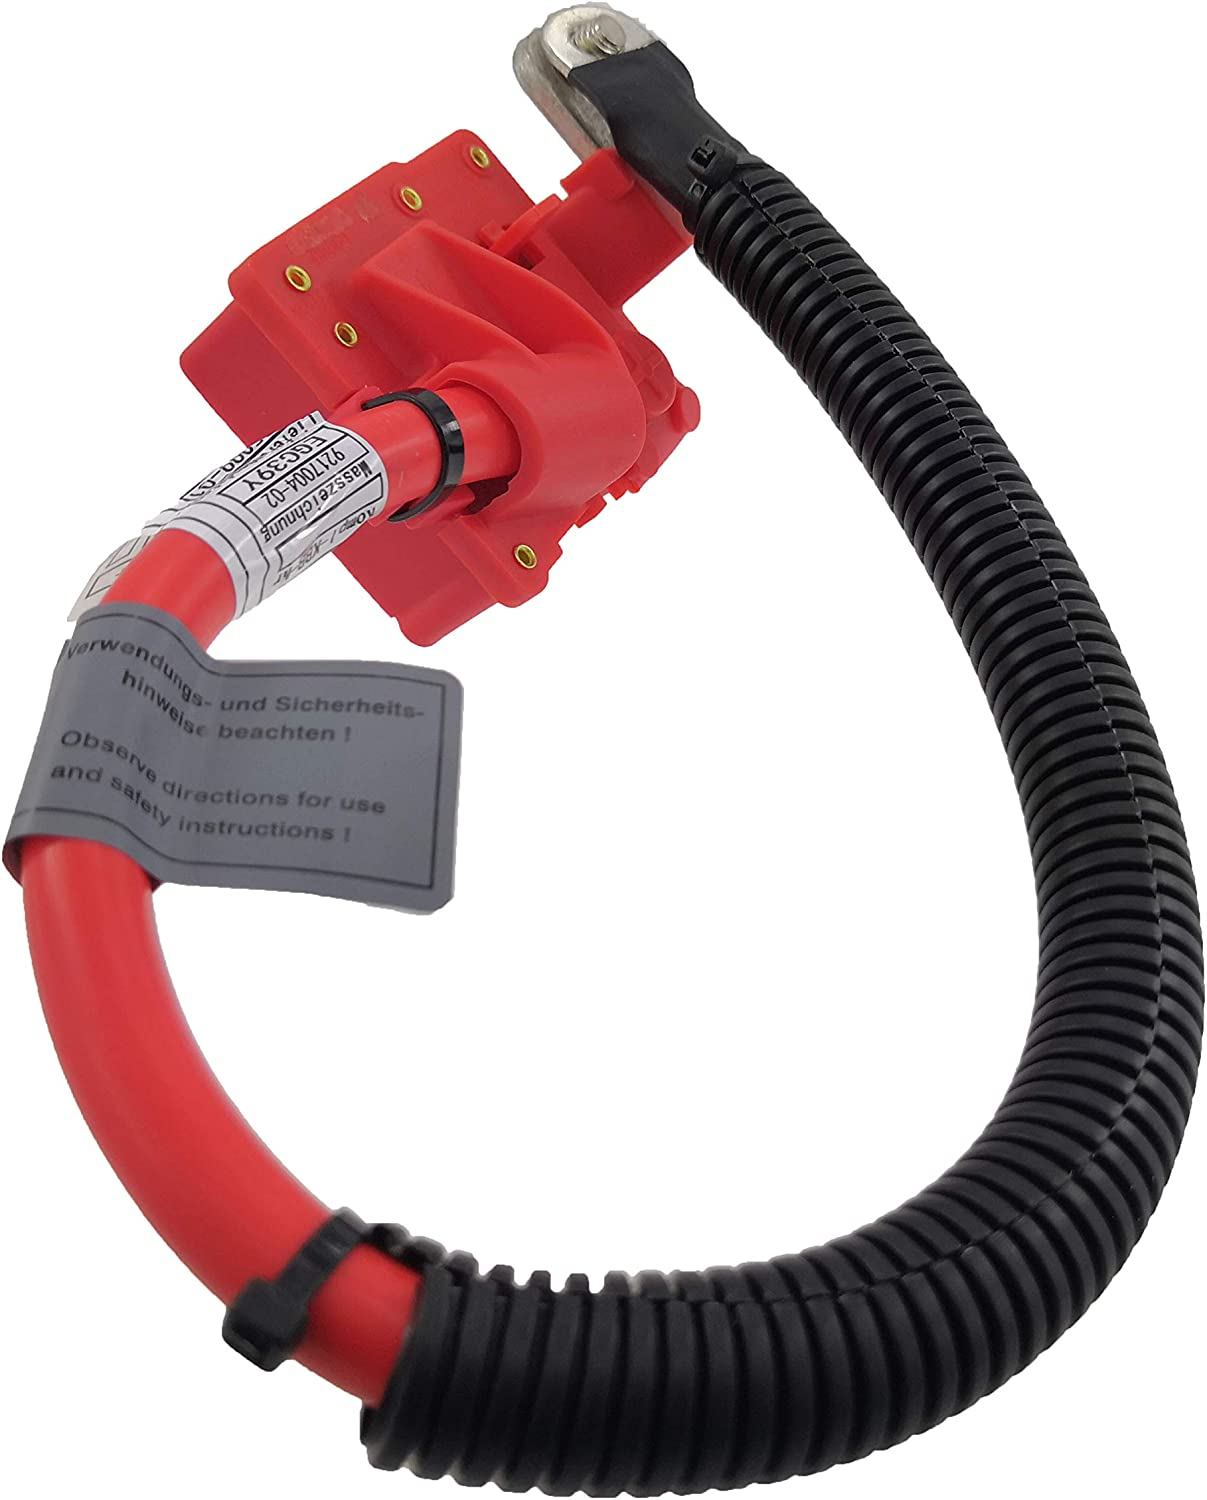 Positive Battery Cable for 61129217004 2007 2008 X Ranking integrated 1st Ranking TOP14 place 2009-2014 BMW